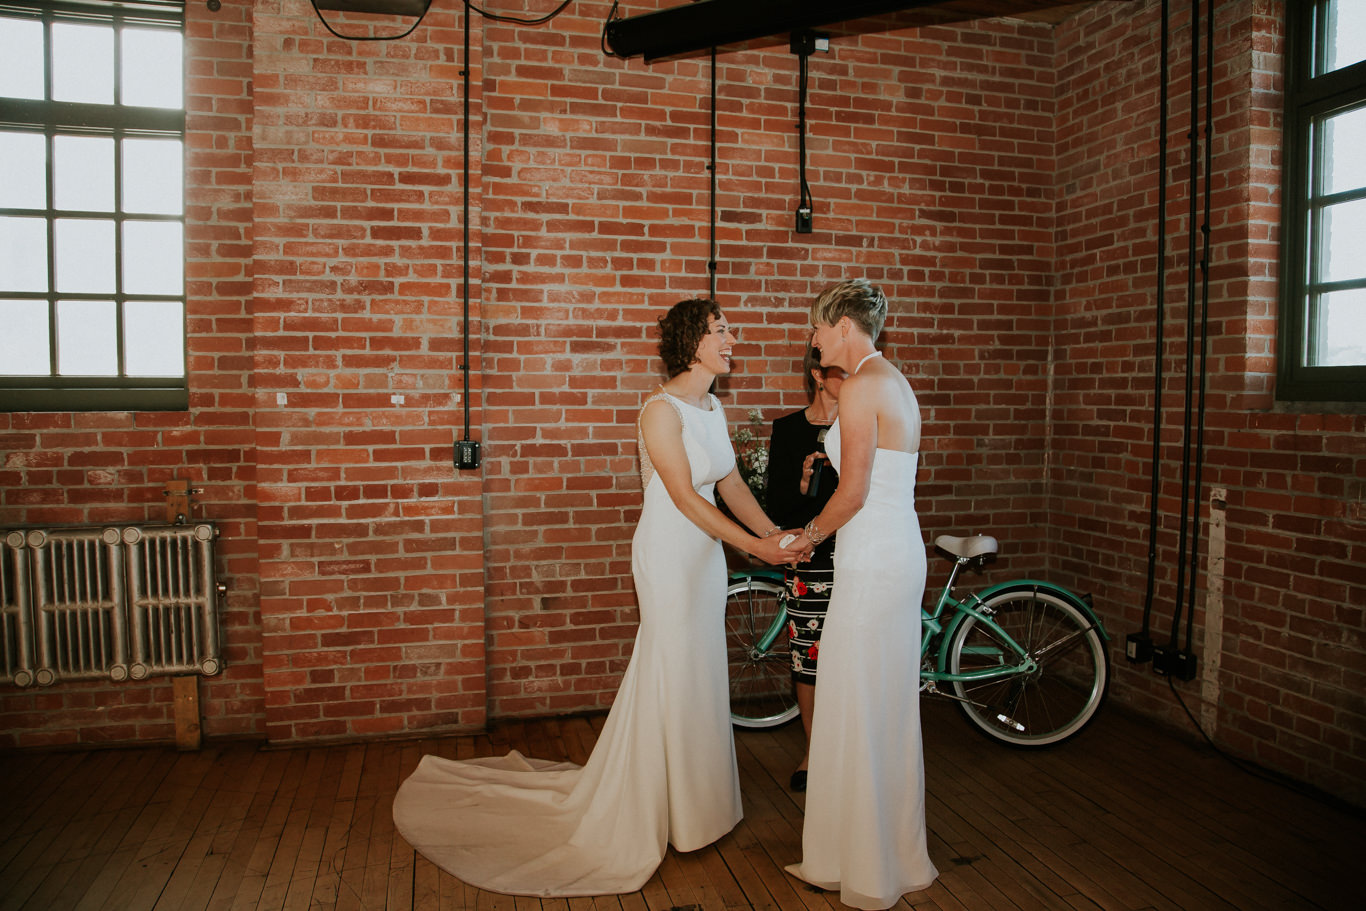 Lindsay-and-Heather-Charbar-Restaurant-Wedding-in-Calgary-80